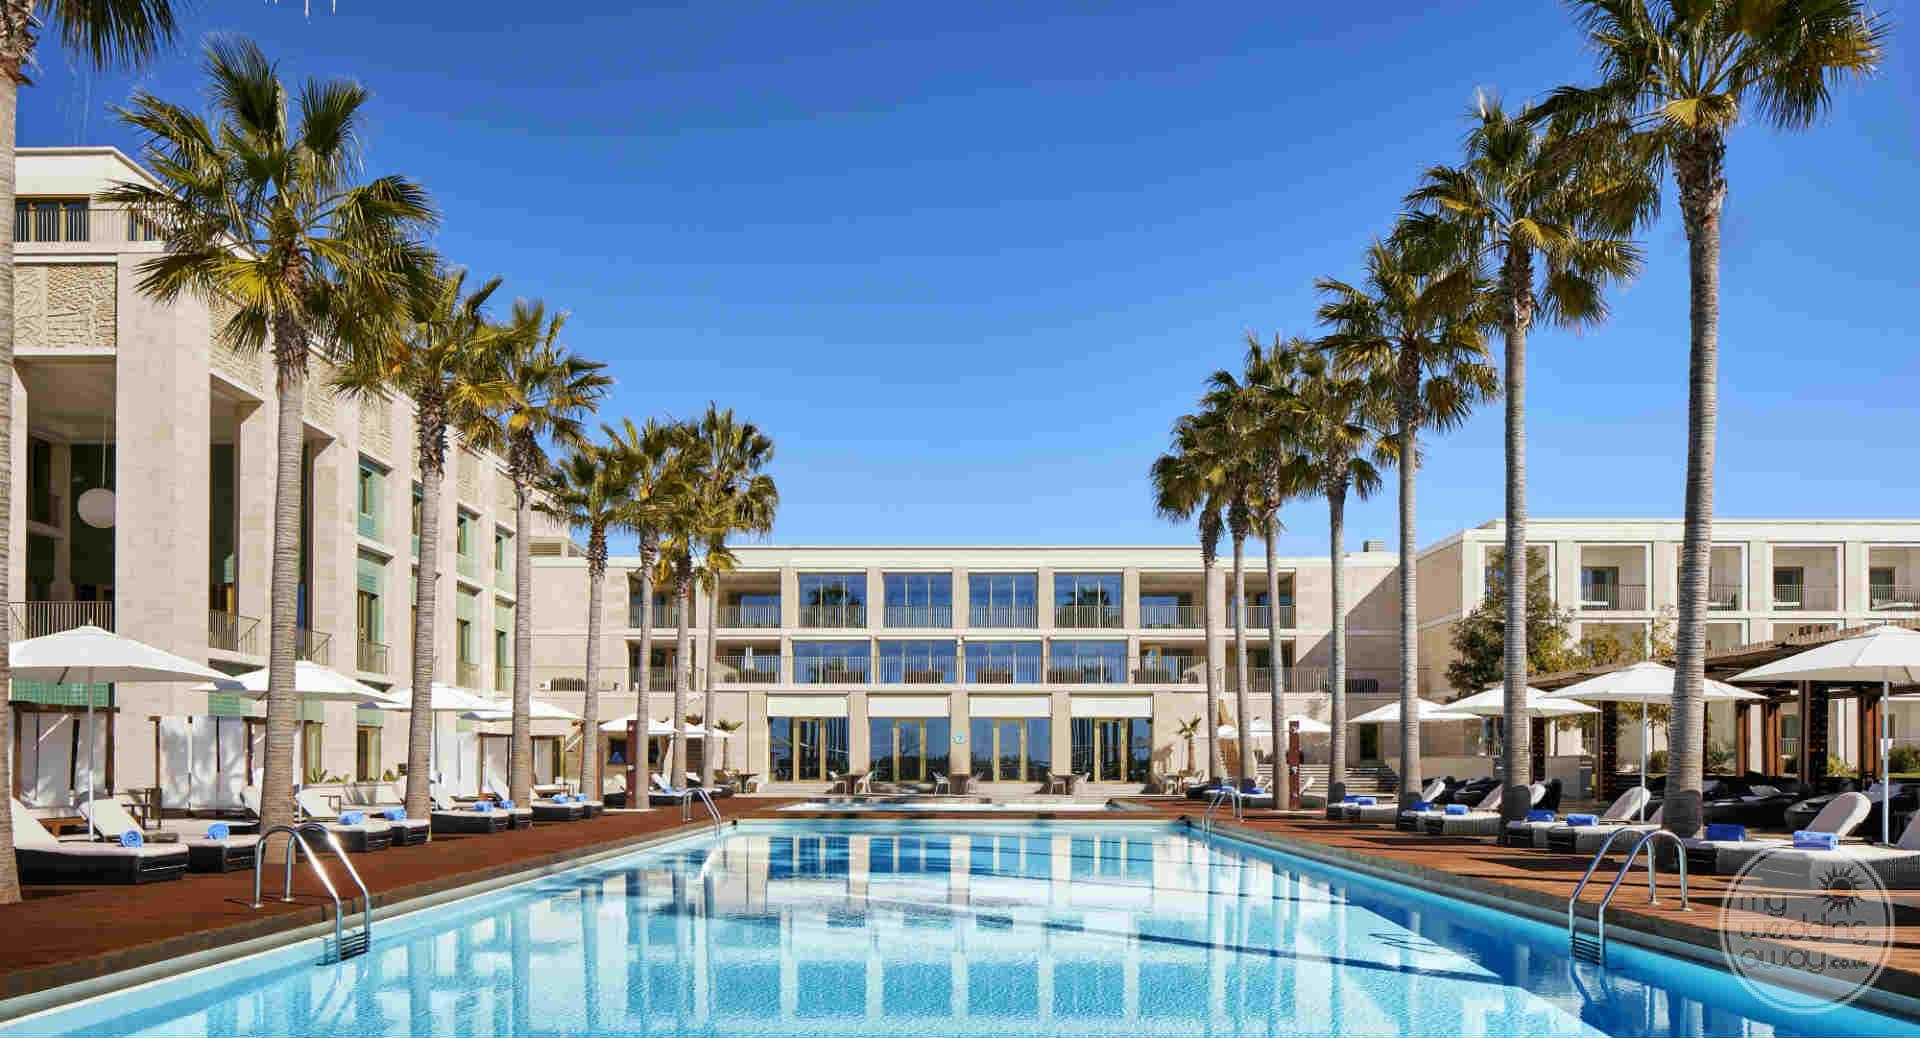 Anantara Vilamoura rooms overlooking pool